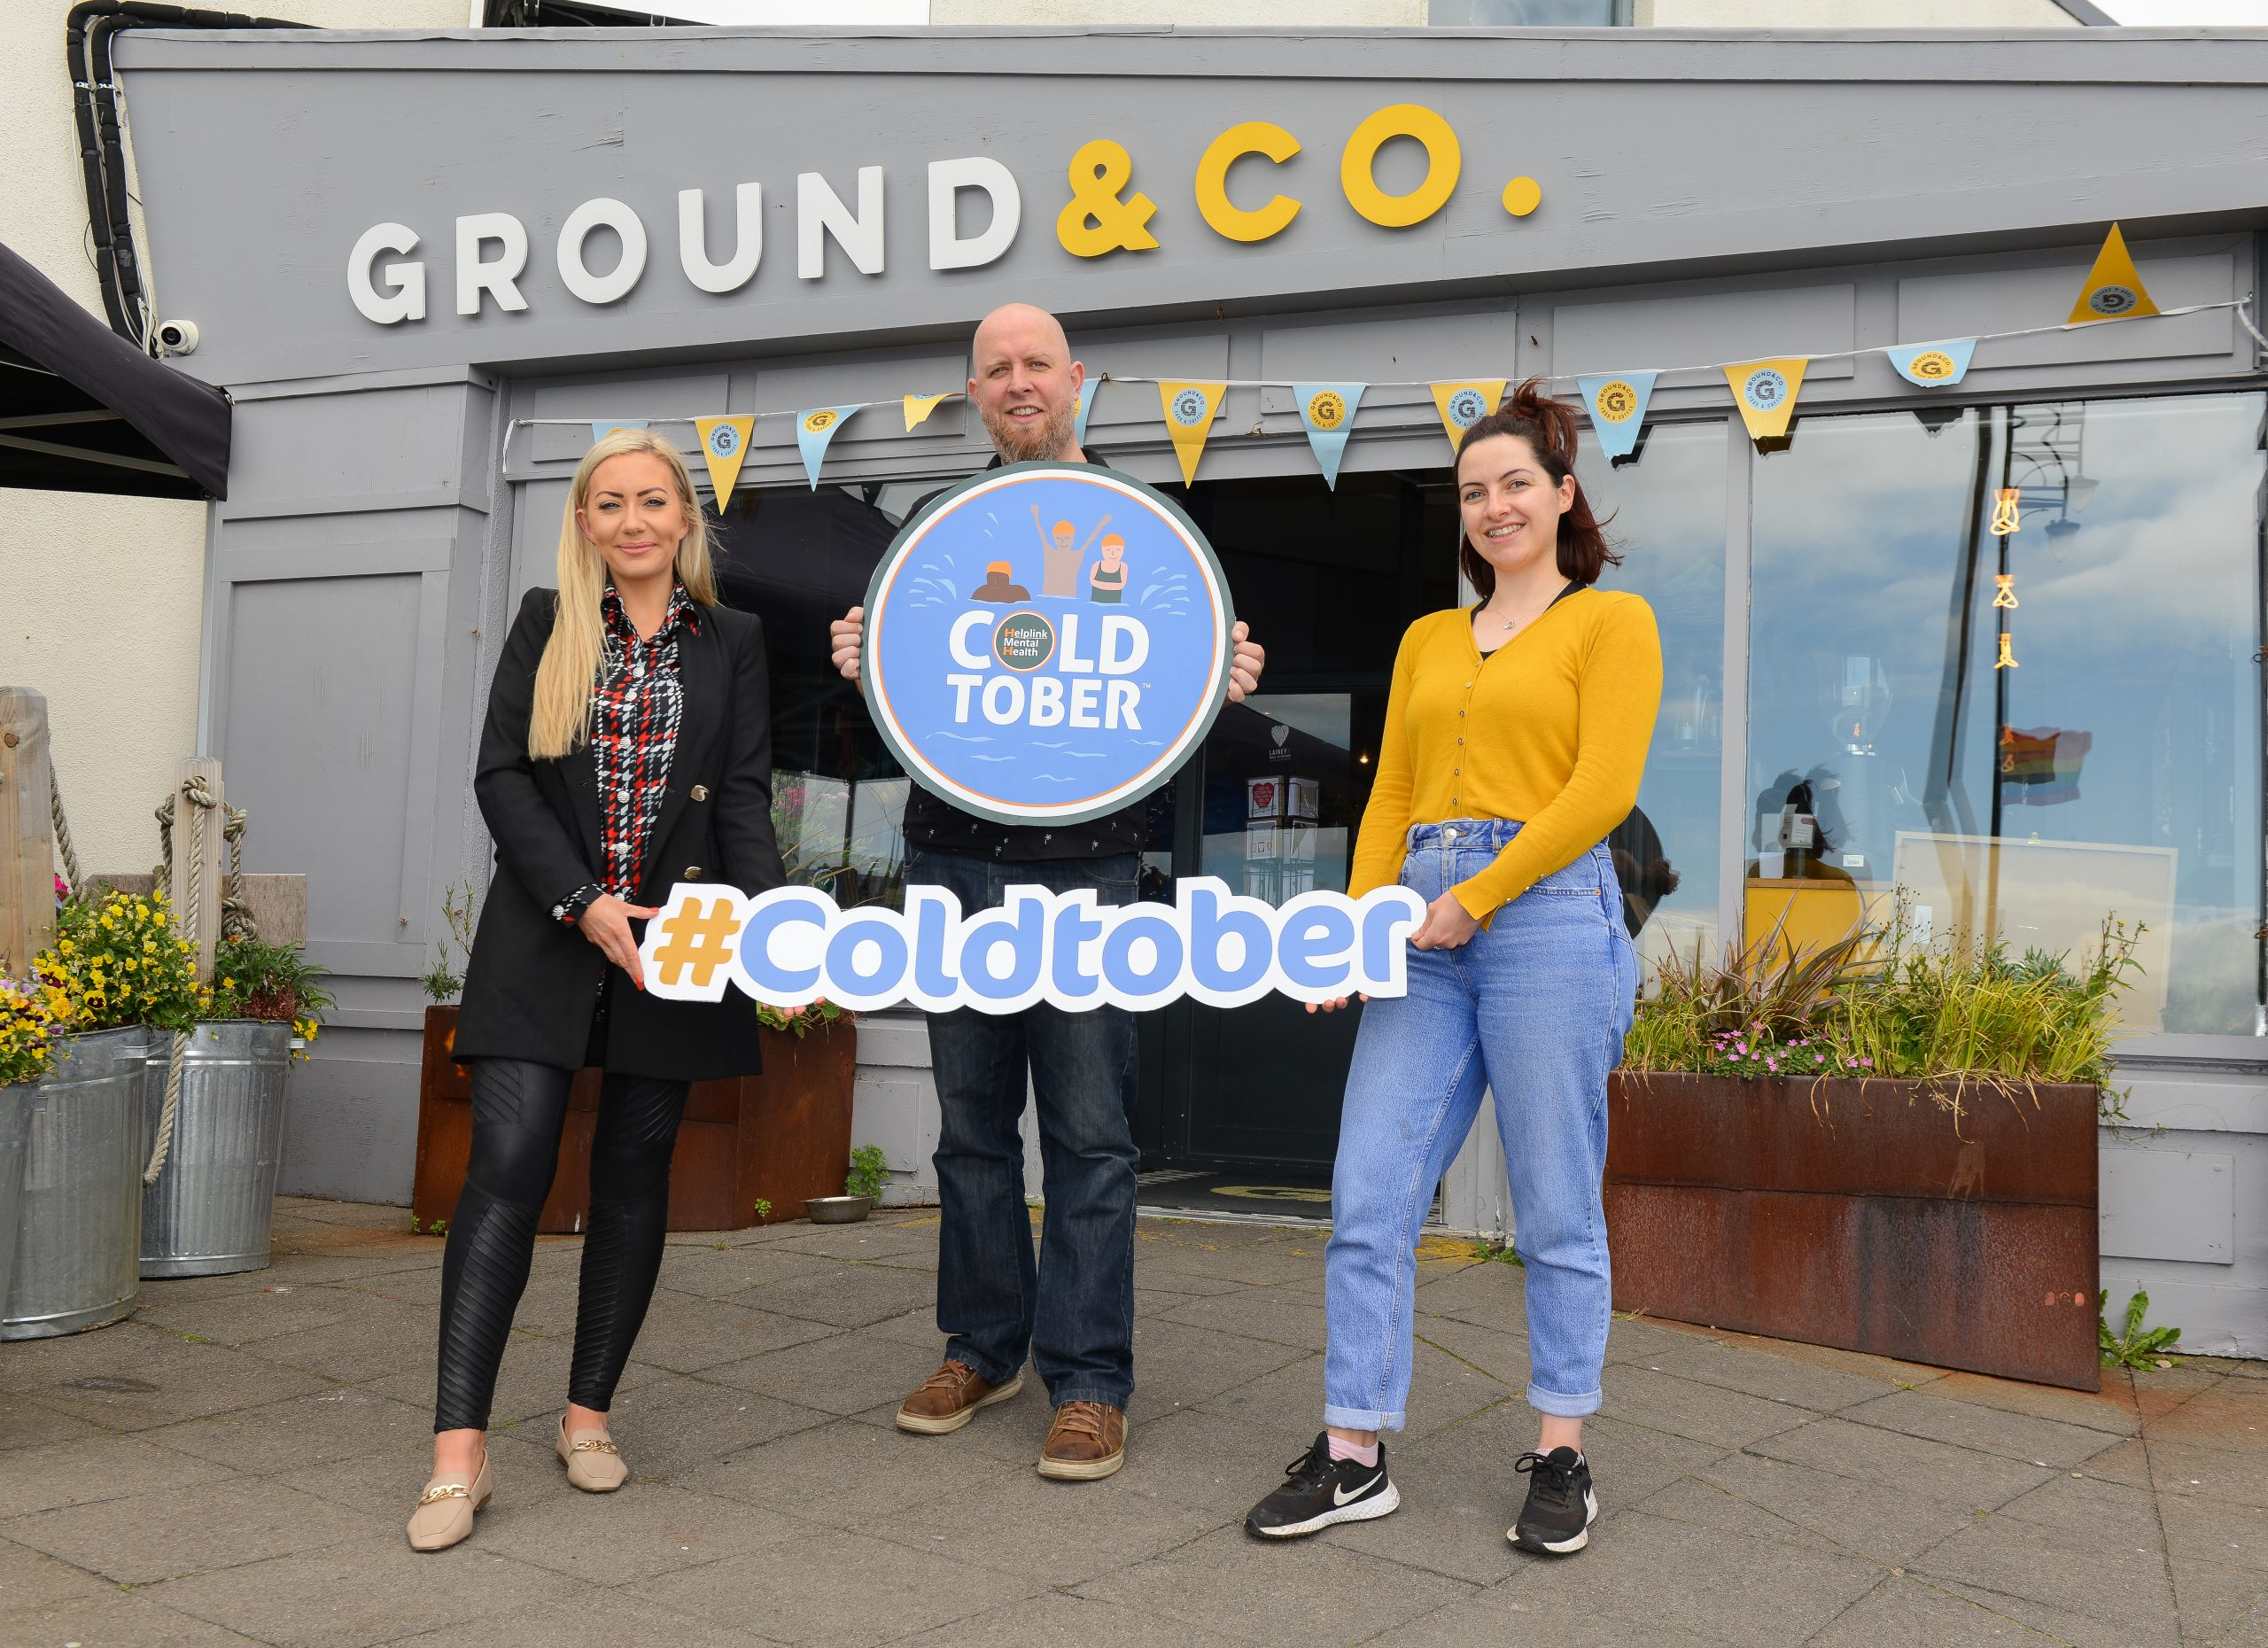 Ground & Co Cafe Galway